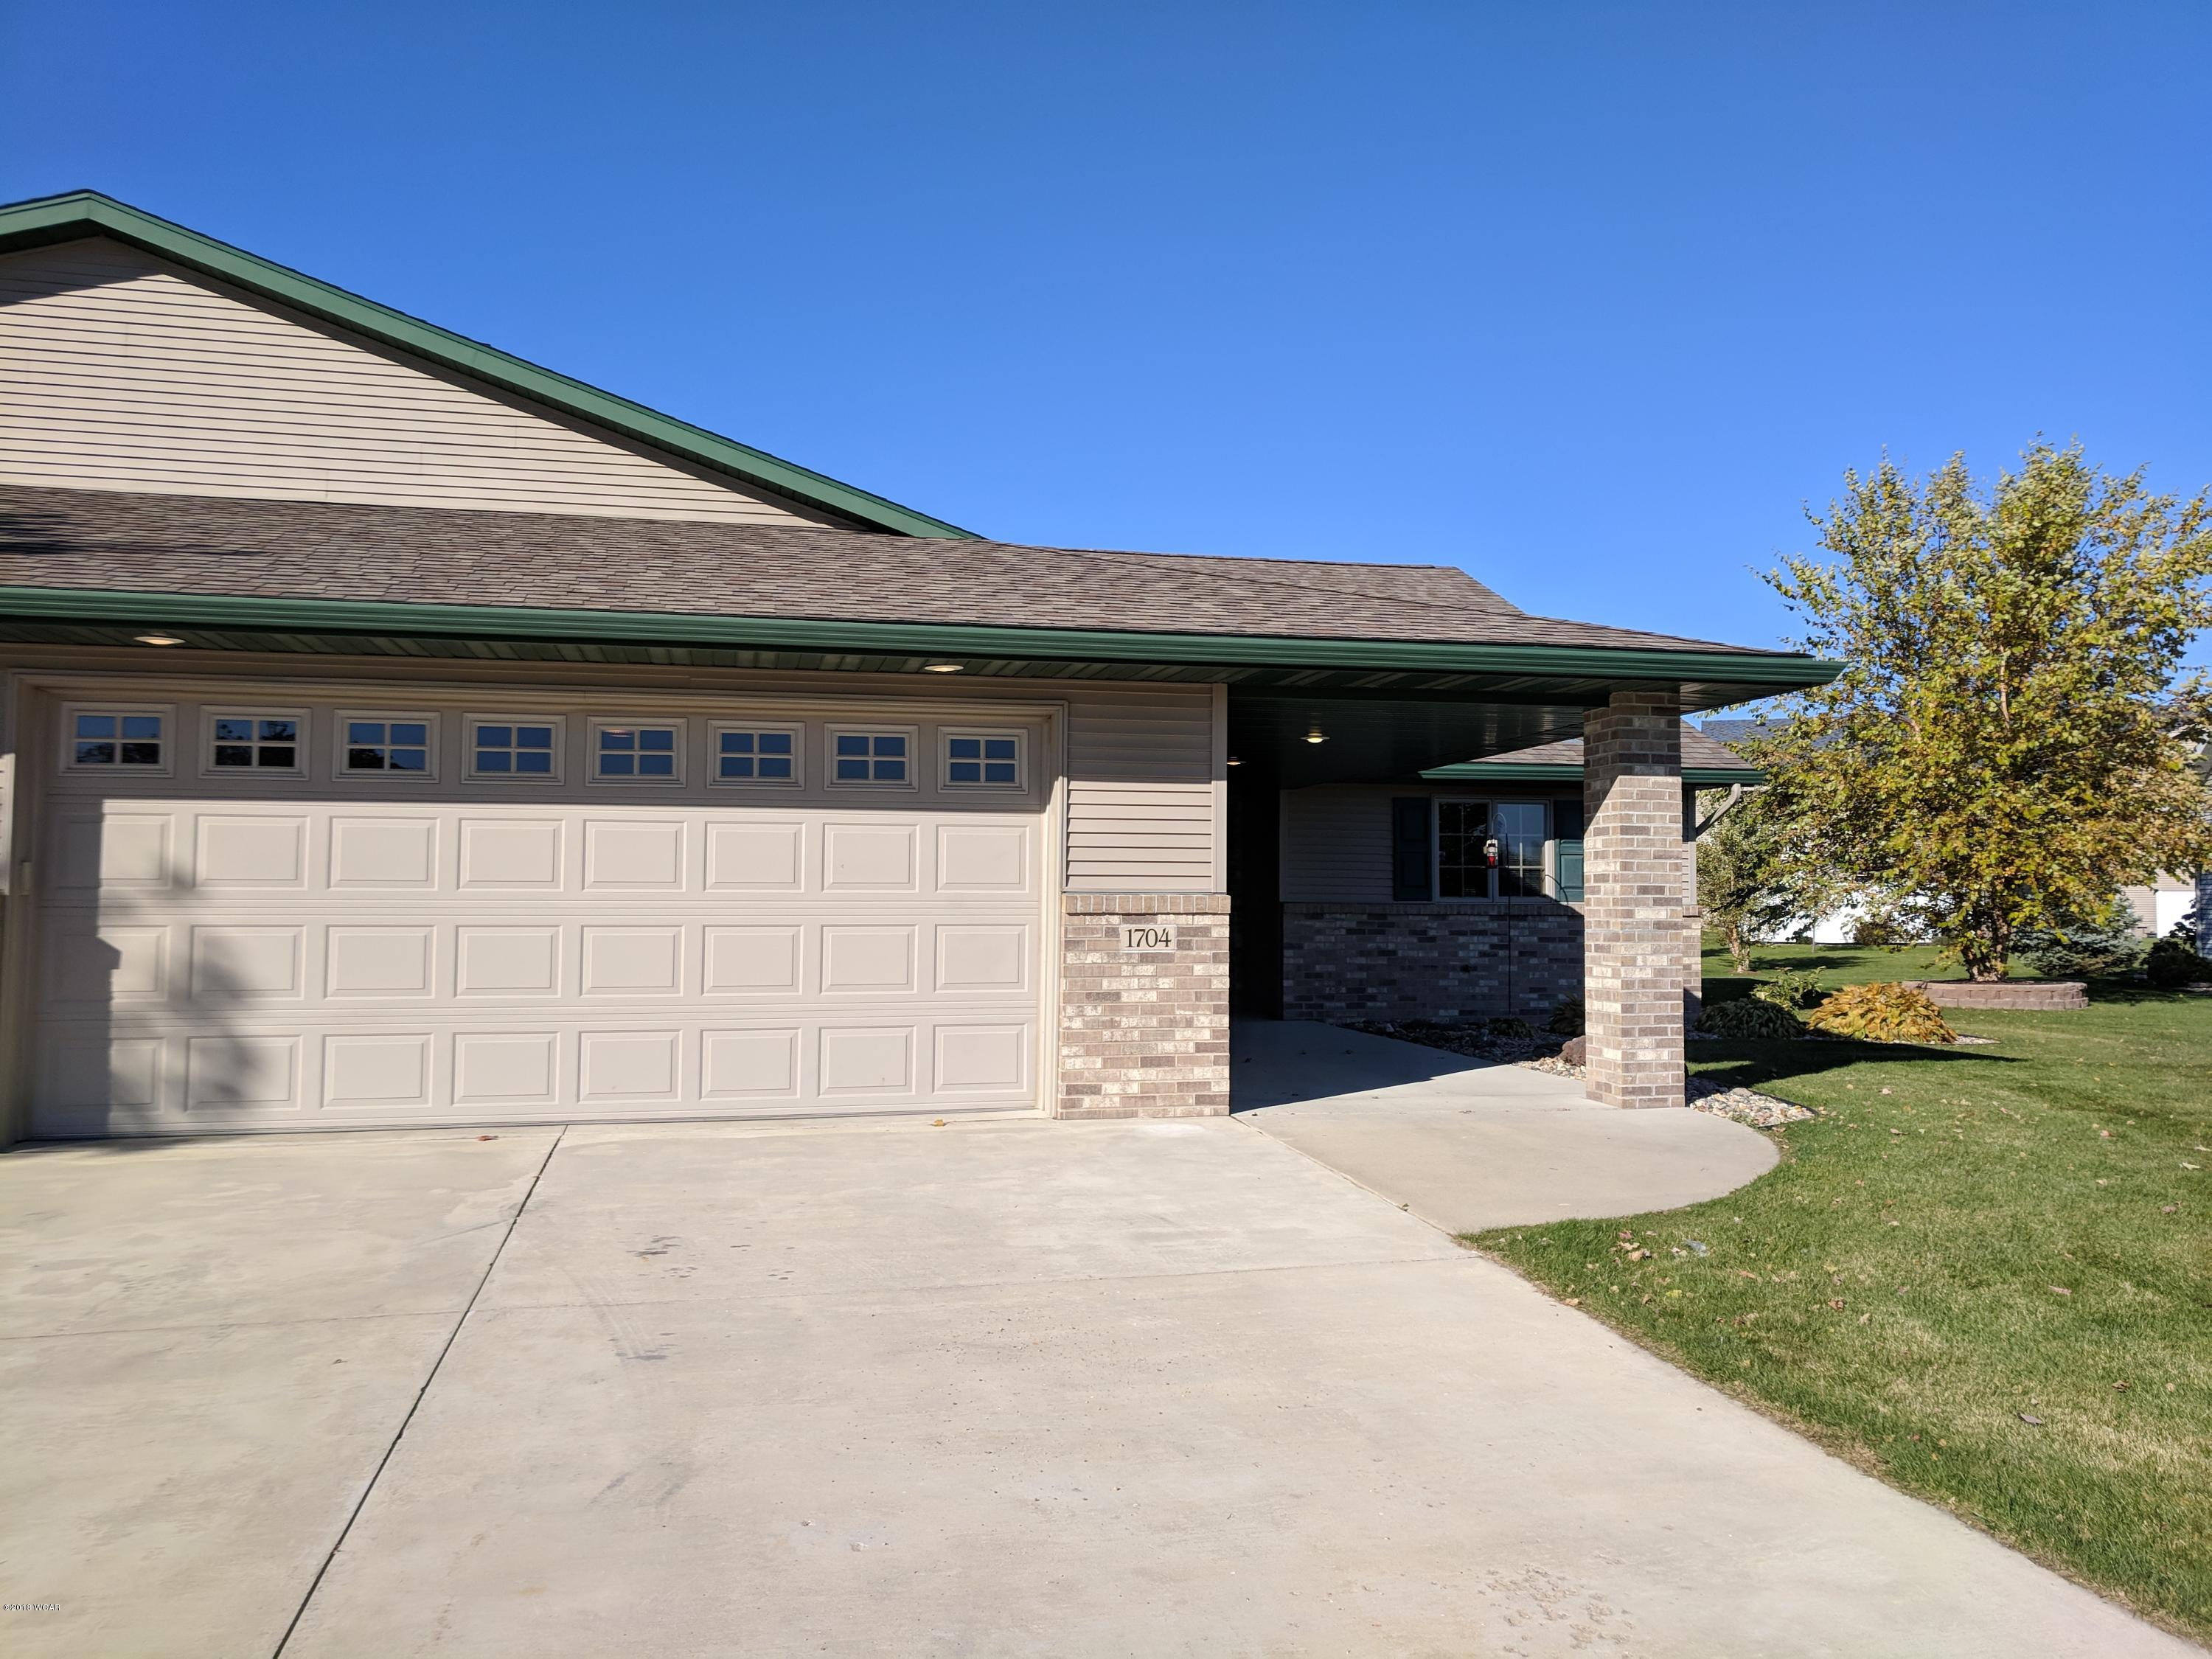 1704 Lower Trentwood Circle,Willmar,2 Bedrooms Bedrooms,2 BathroomsBathrooms,Single Family,Lower Trentwood Circle,6032659